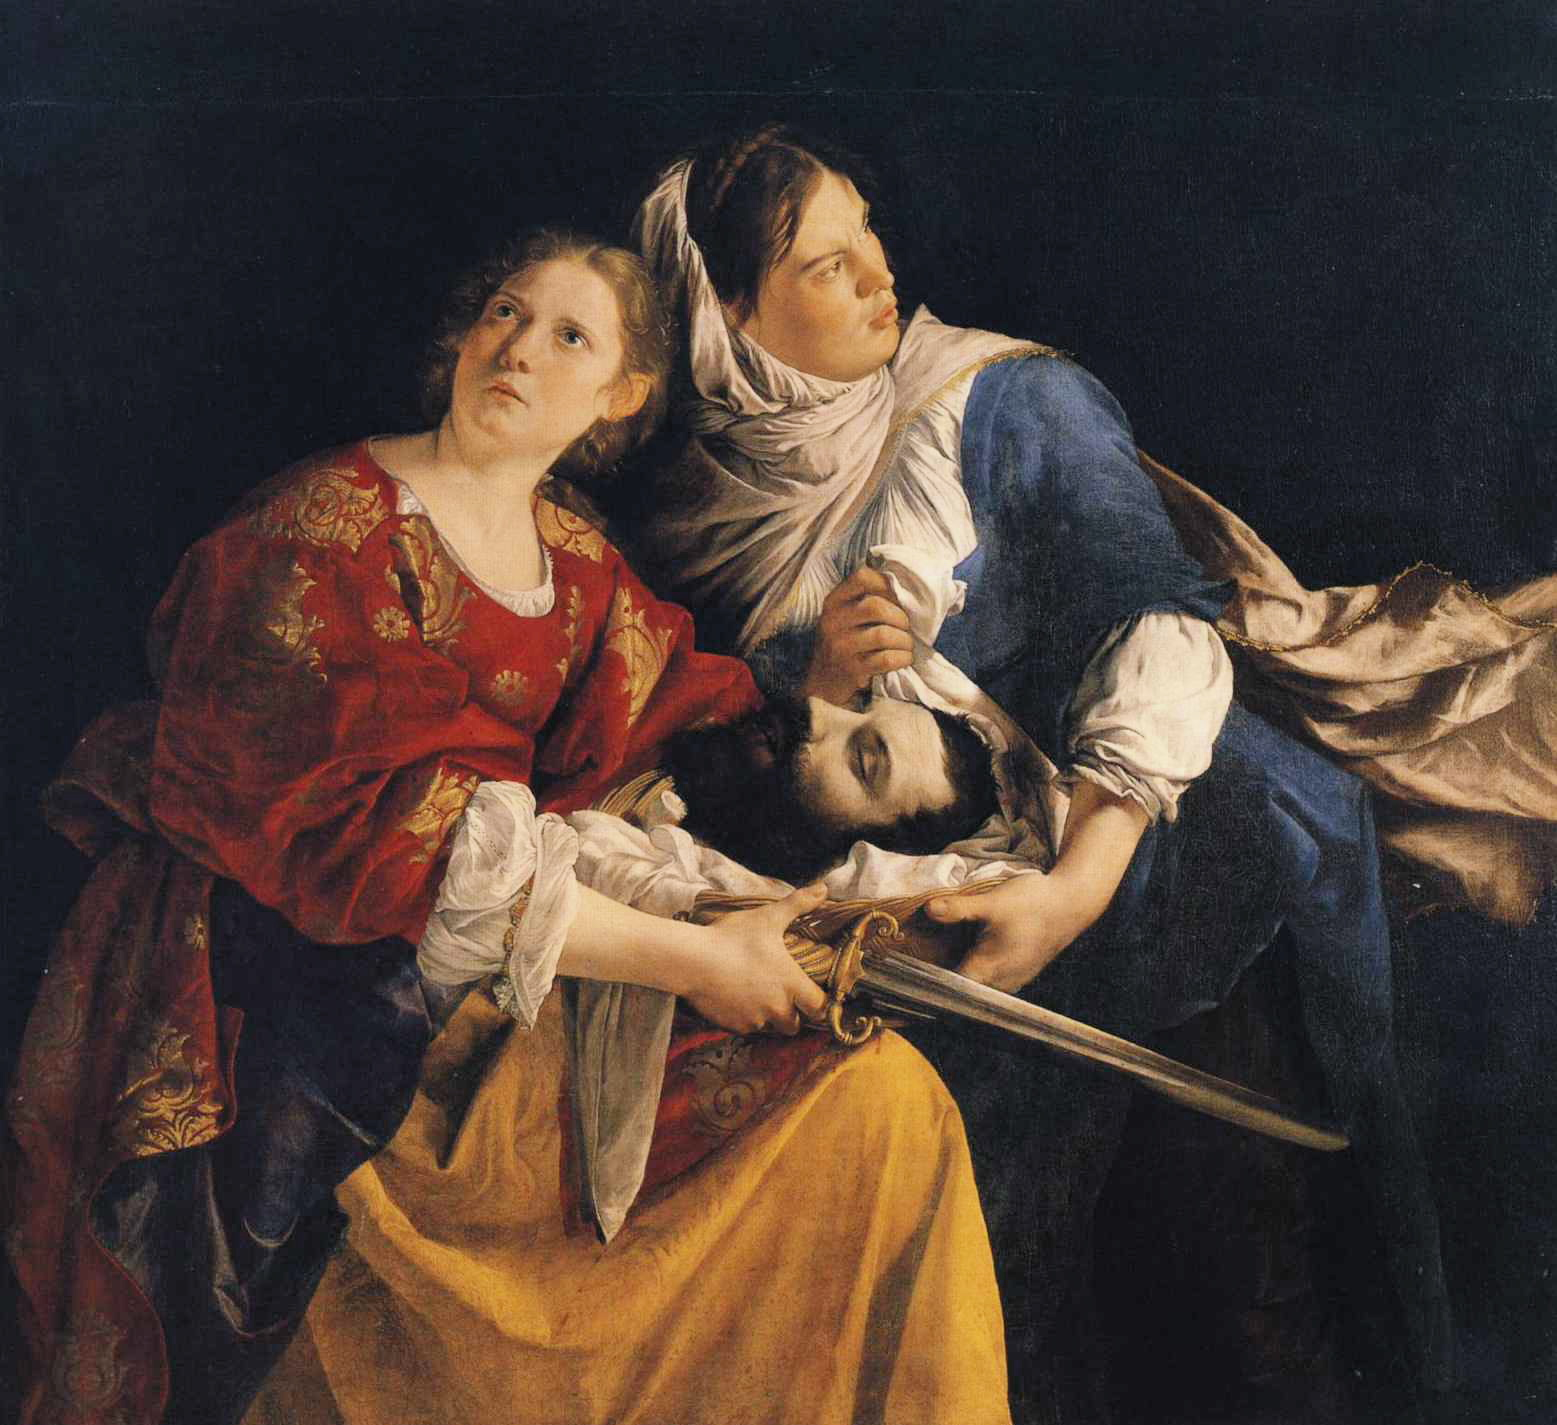 Orazio_Gentileschi_-_Judith_and_Her_Maidservant_with_the_Head_of_Holofernes.JPG